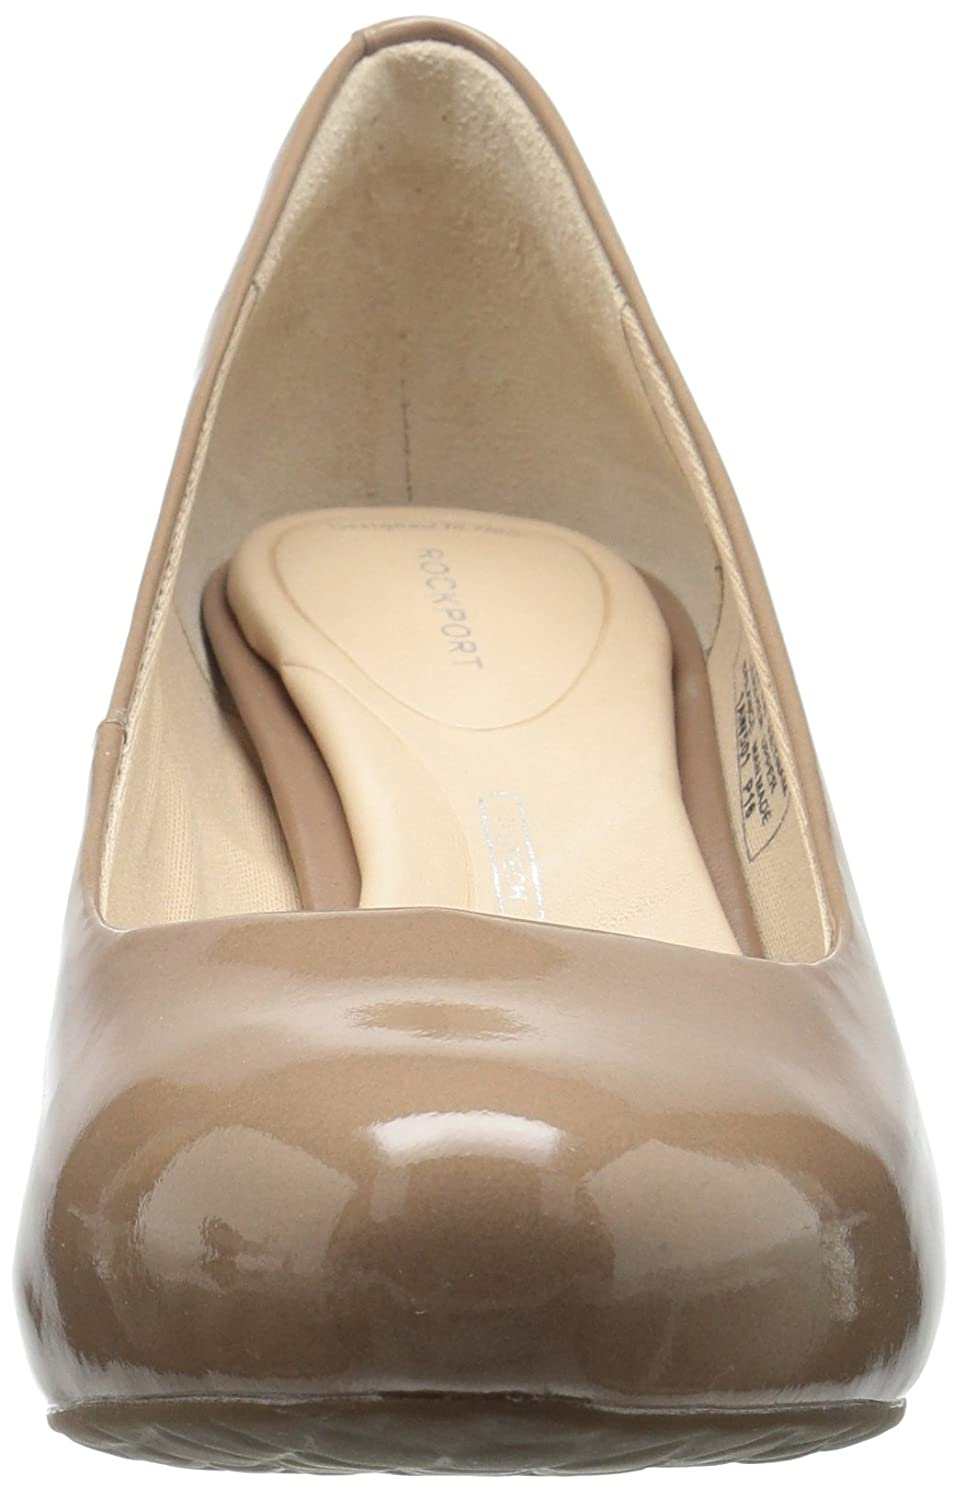 Rockport Women's Sto7h65 Dress Pump B01ABRIAIU 6.5 B(M) US|Rich Taupe Patent